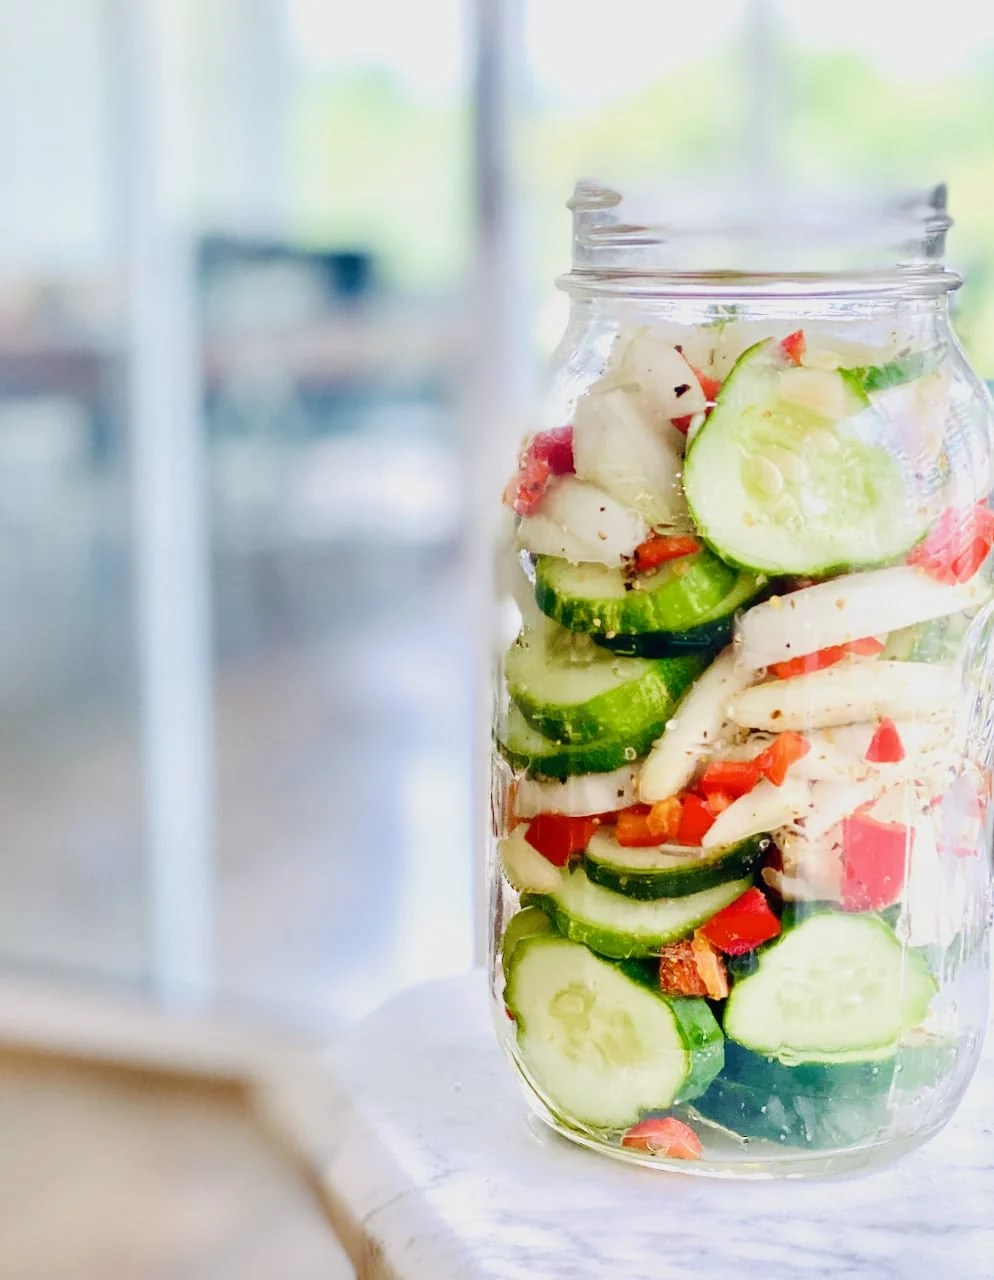 cucumbers, onions and red peppers in a mason jar on a slate table with blurred background